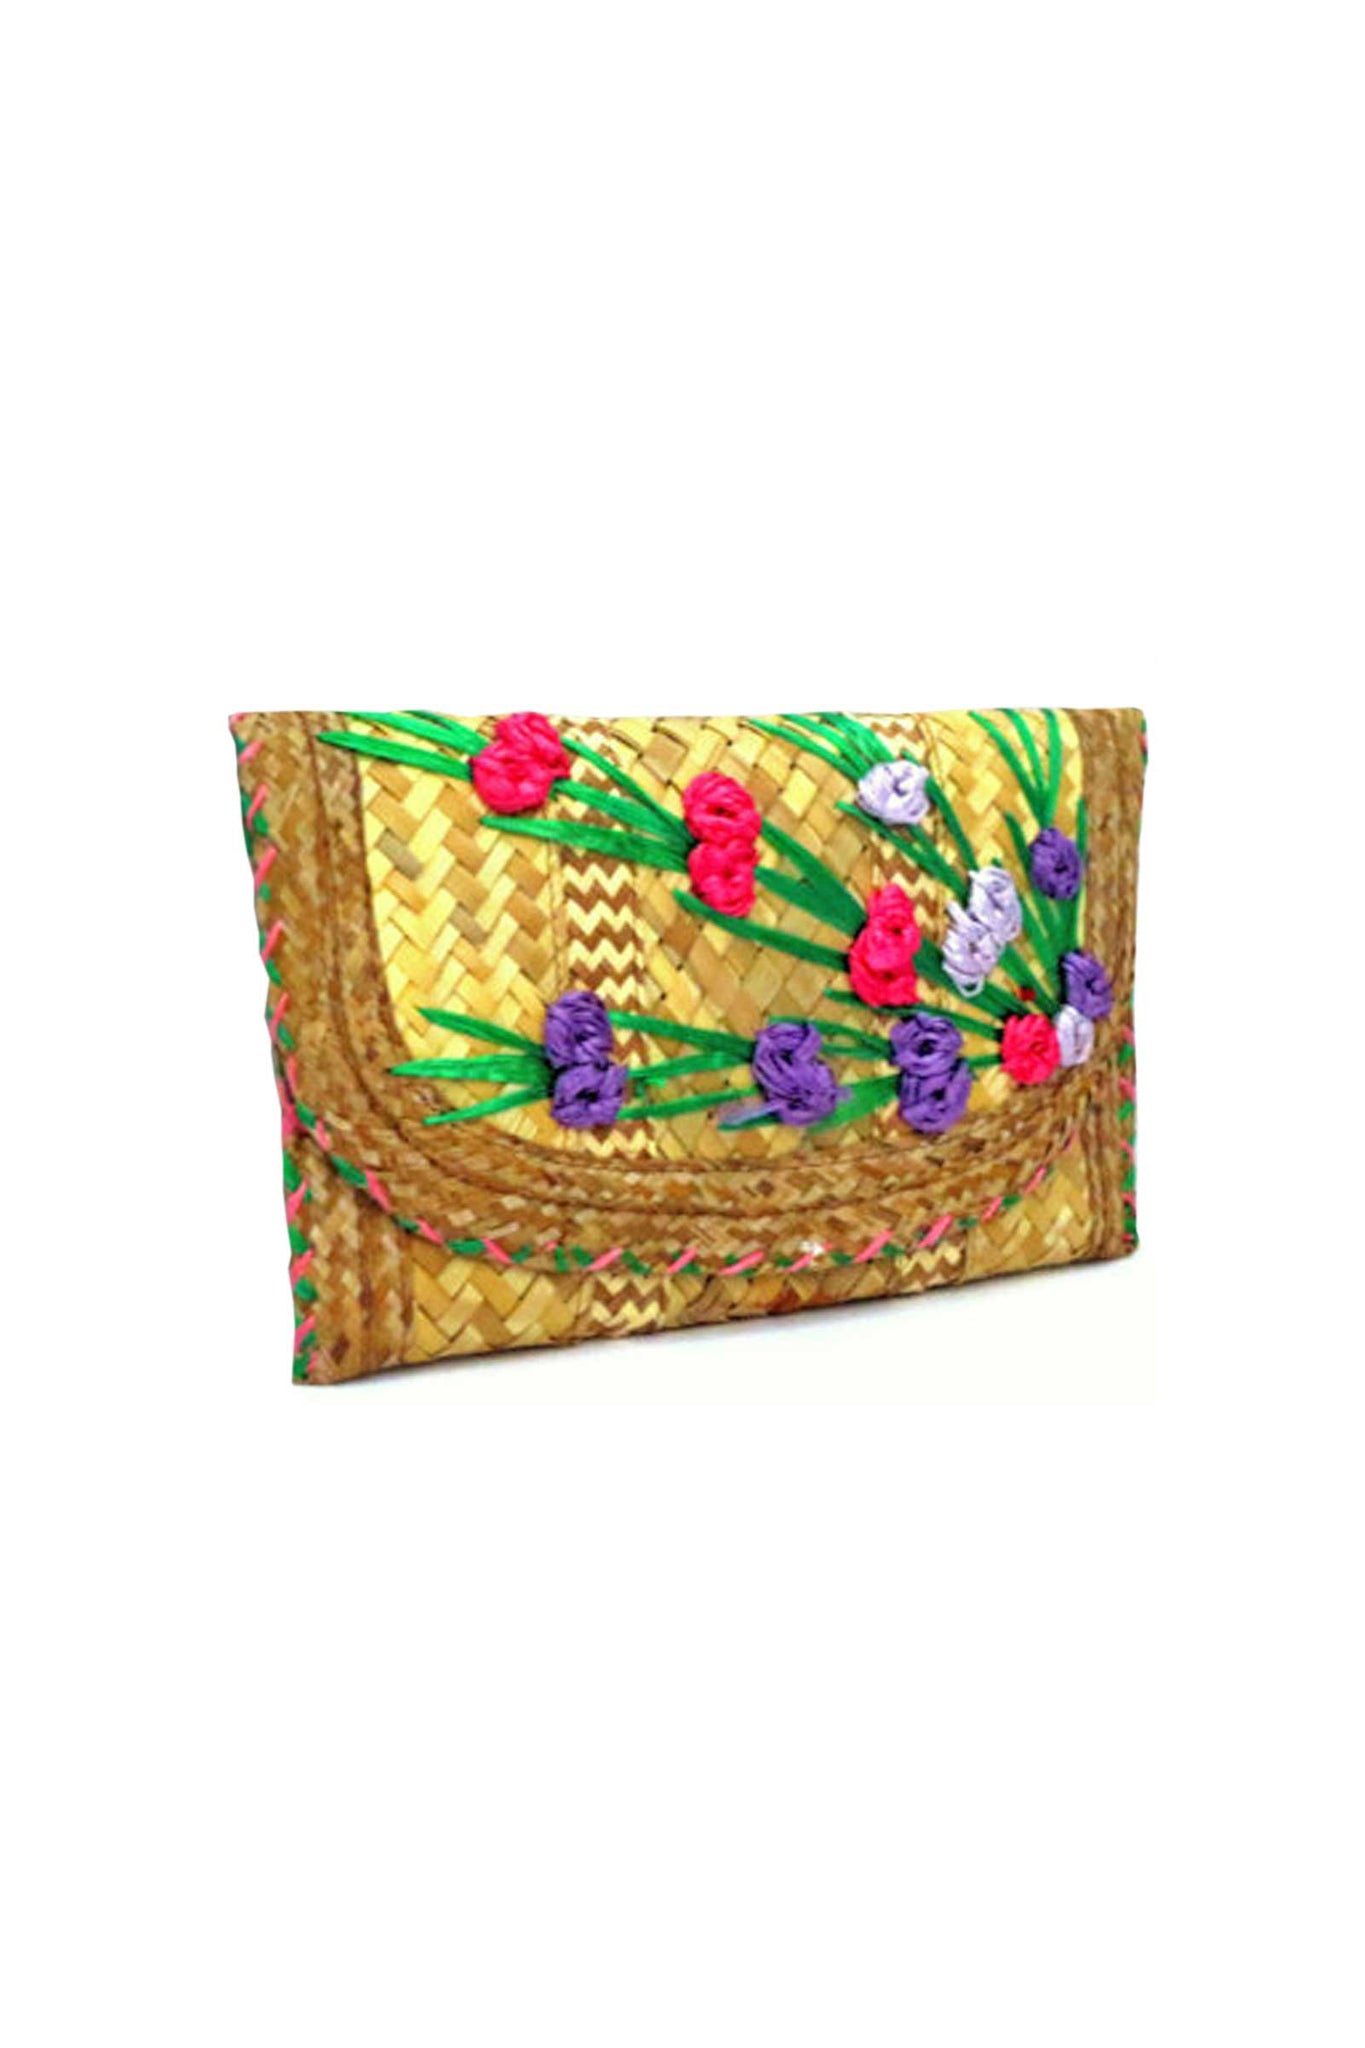 Vintage Kika straw clutch bag